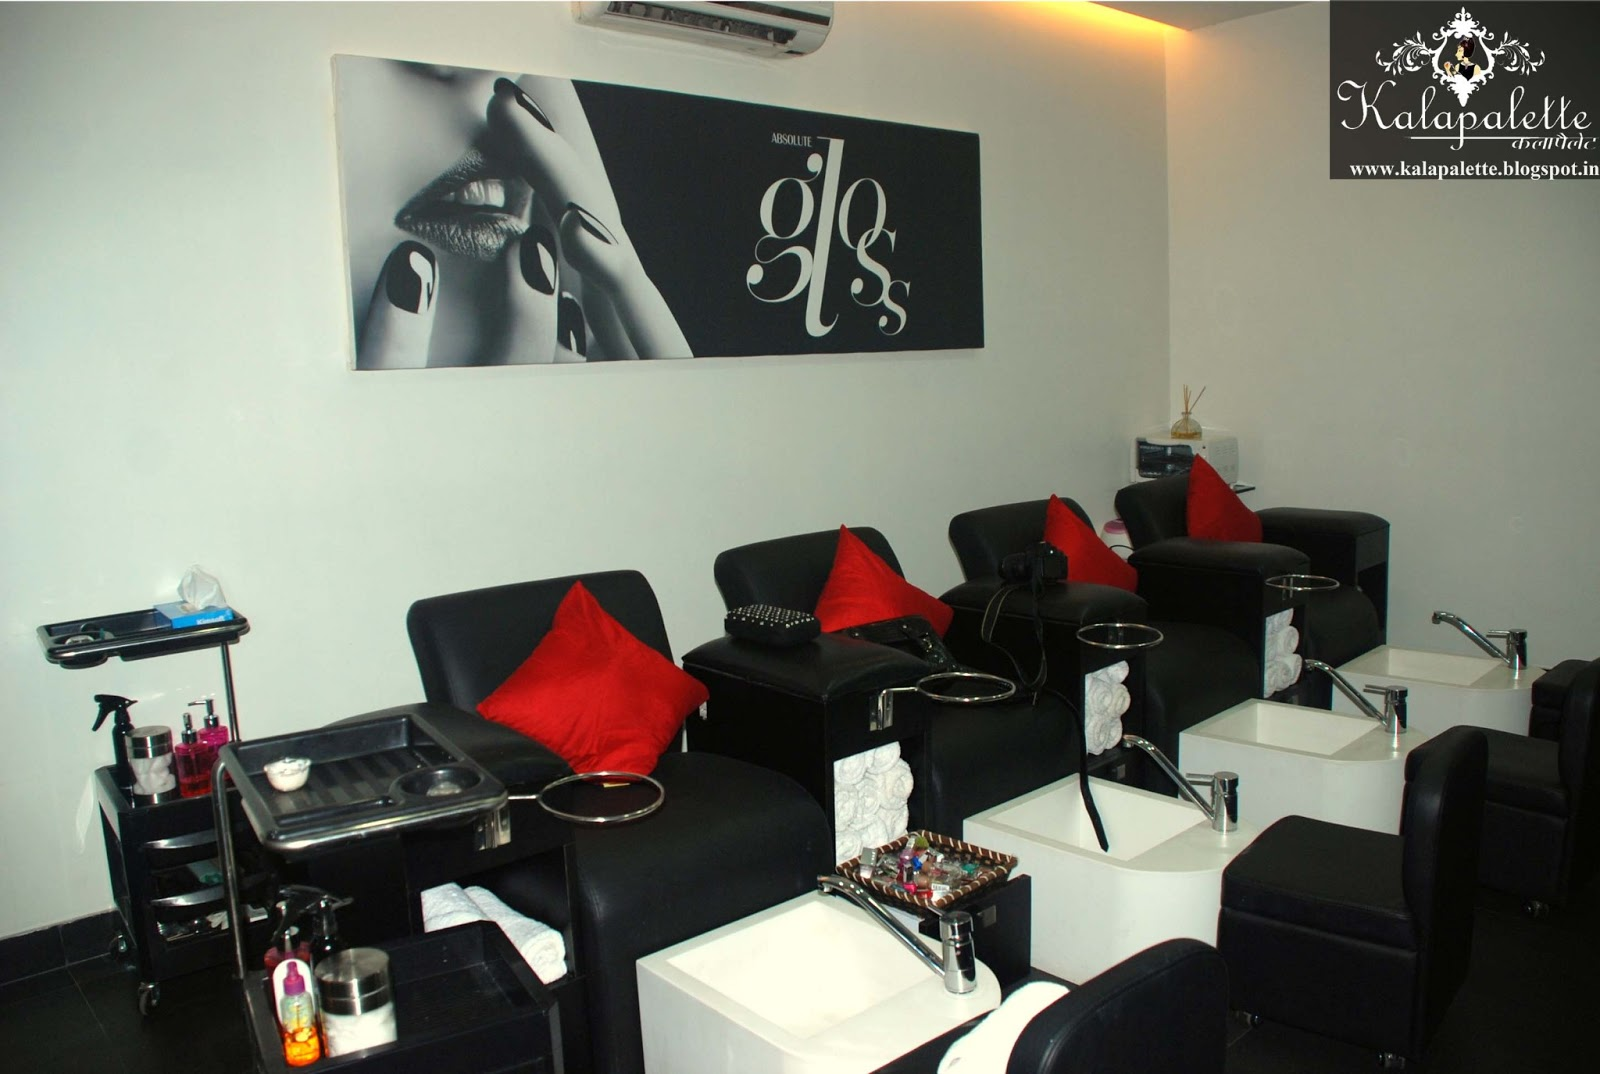 Salon Chairs In Delhi Crate And Barrel Brown Leather Recliner Club Chair Hair Styling Stations 2013 Joy Studio Design